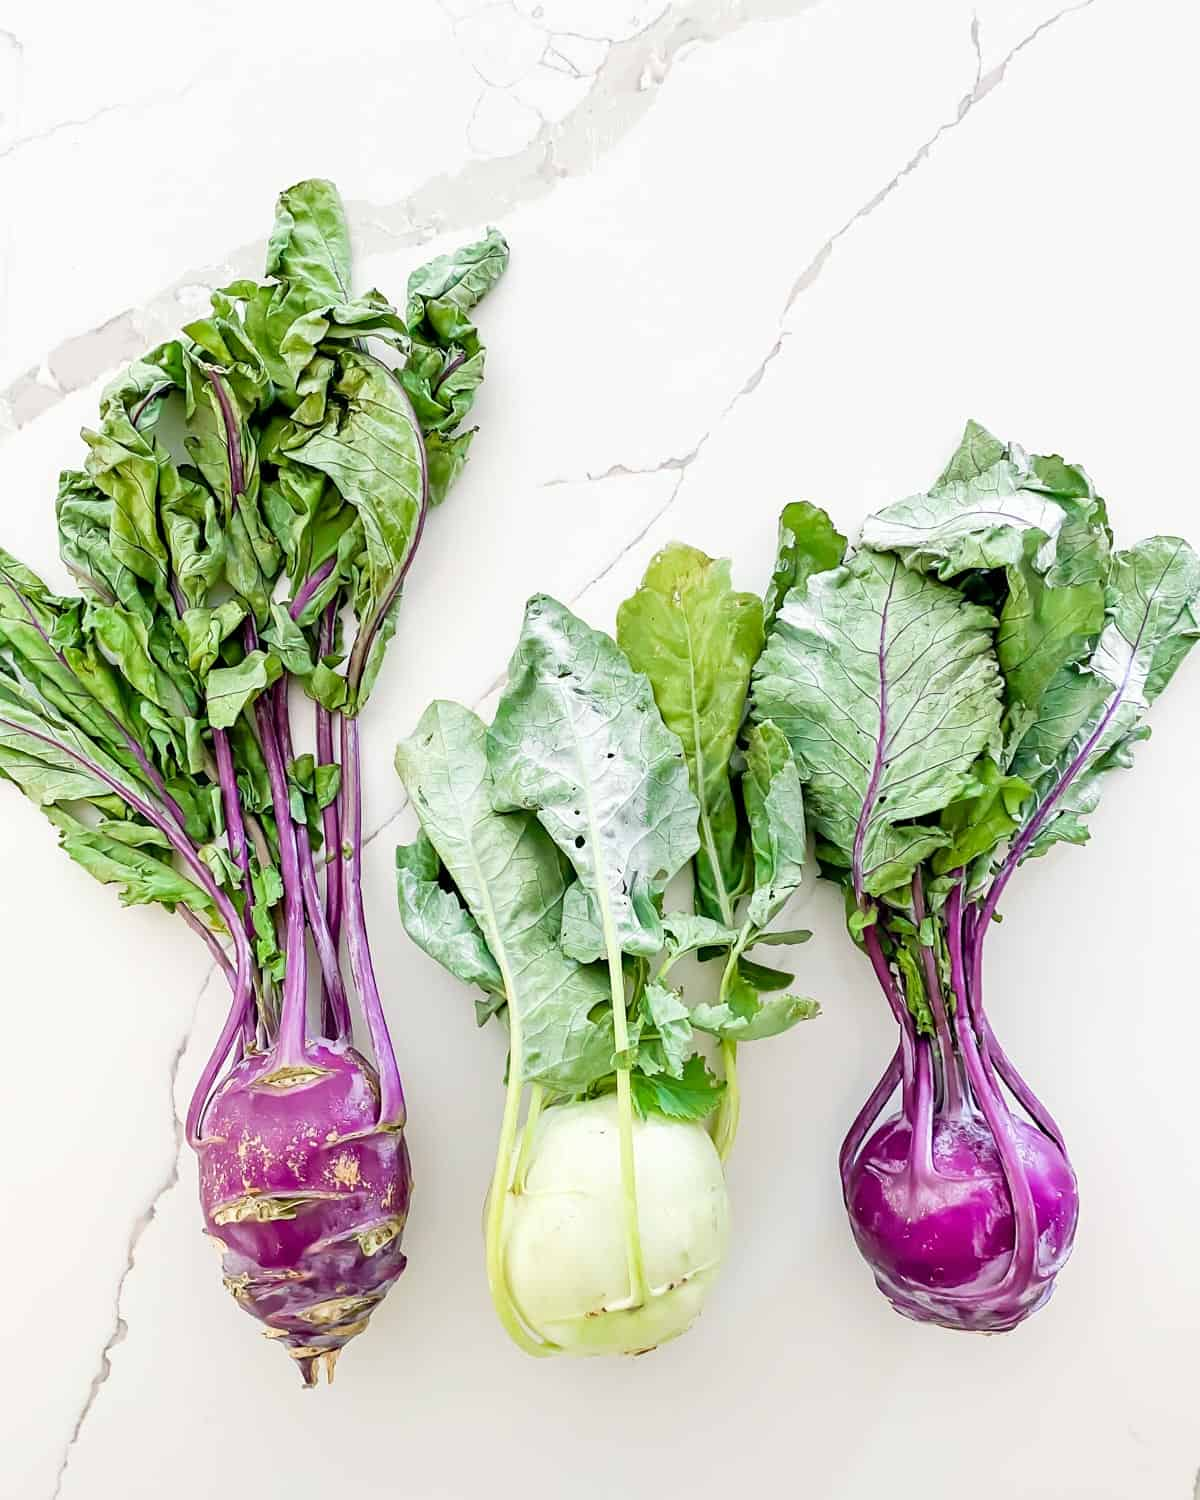 white and purple kohlrabi with stems